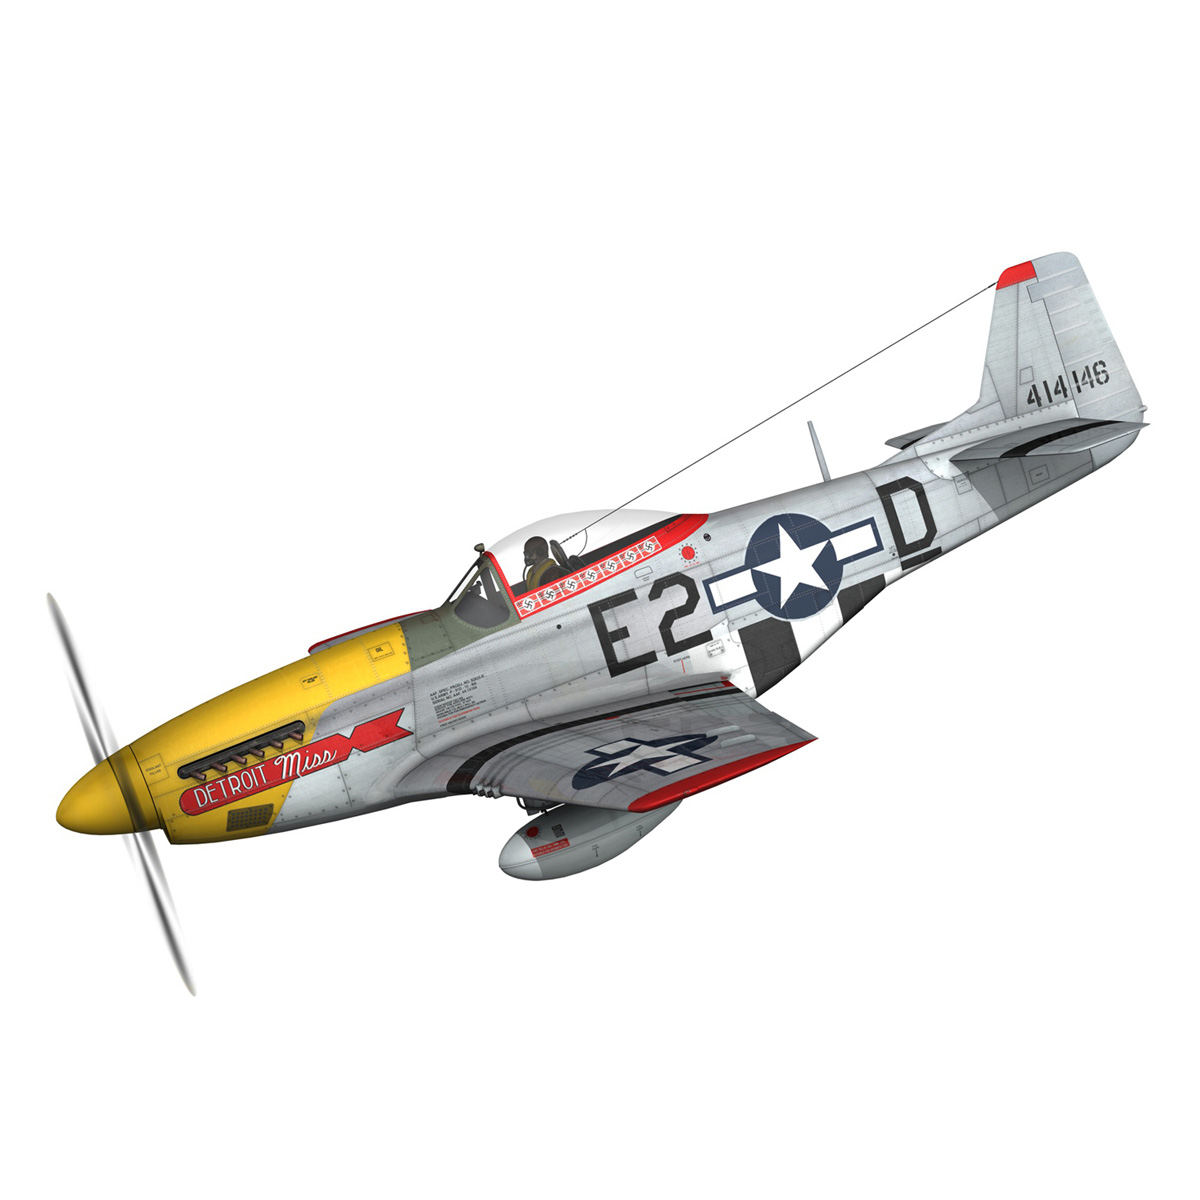 north american p-51d – mustang – detroit miss 3d model 3ds fbx c4d lwo obj 267593